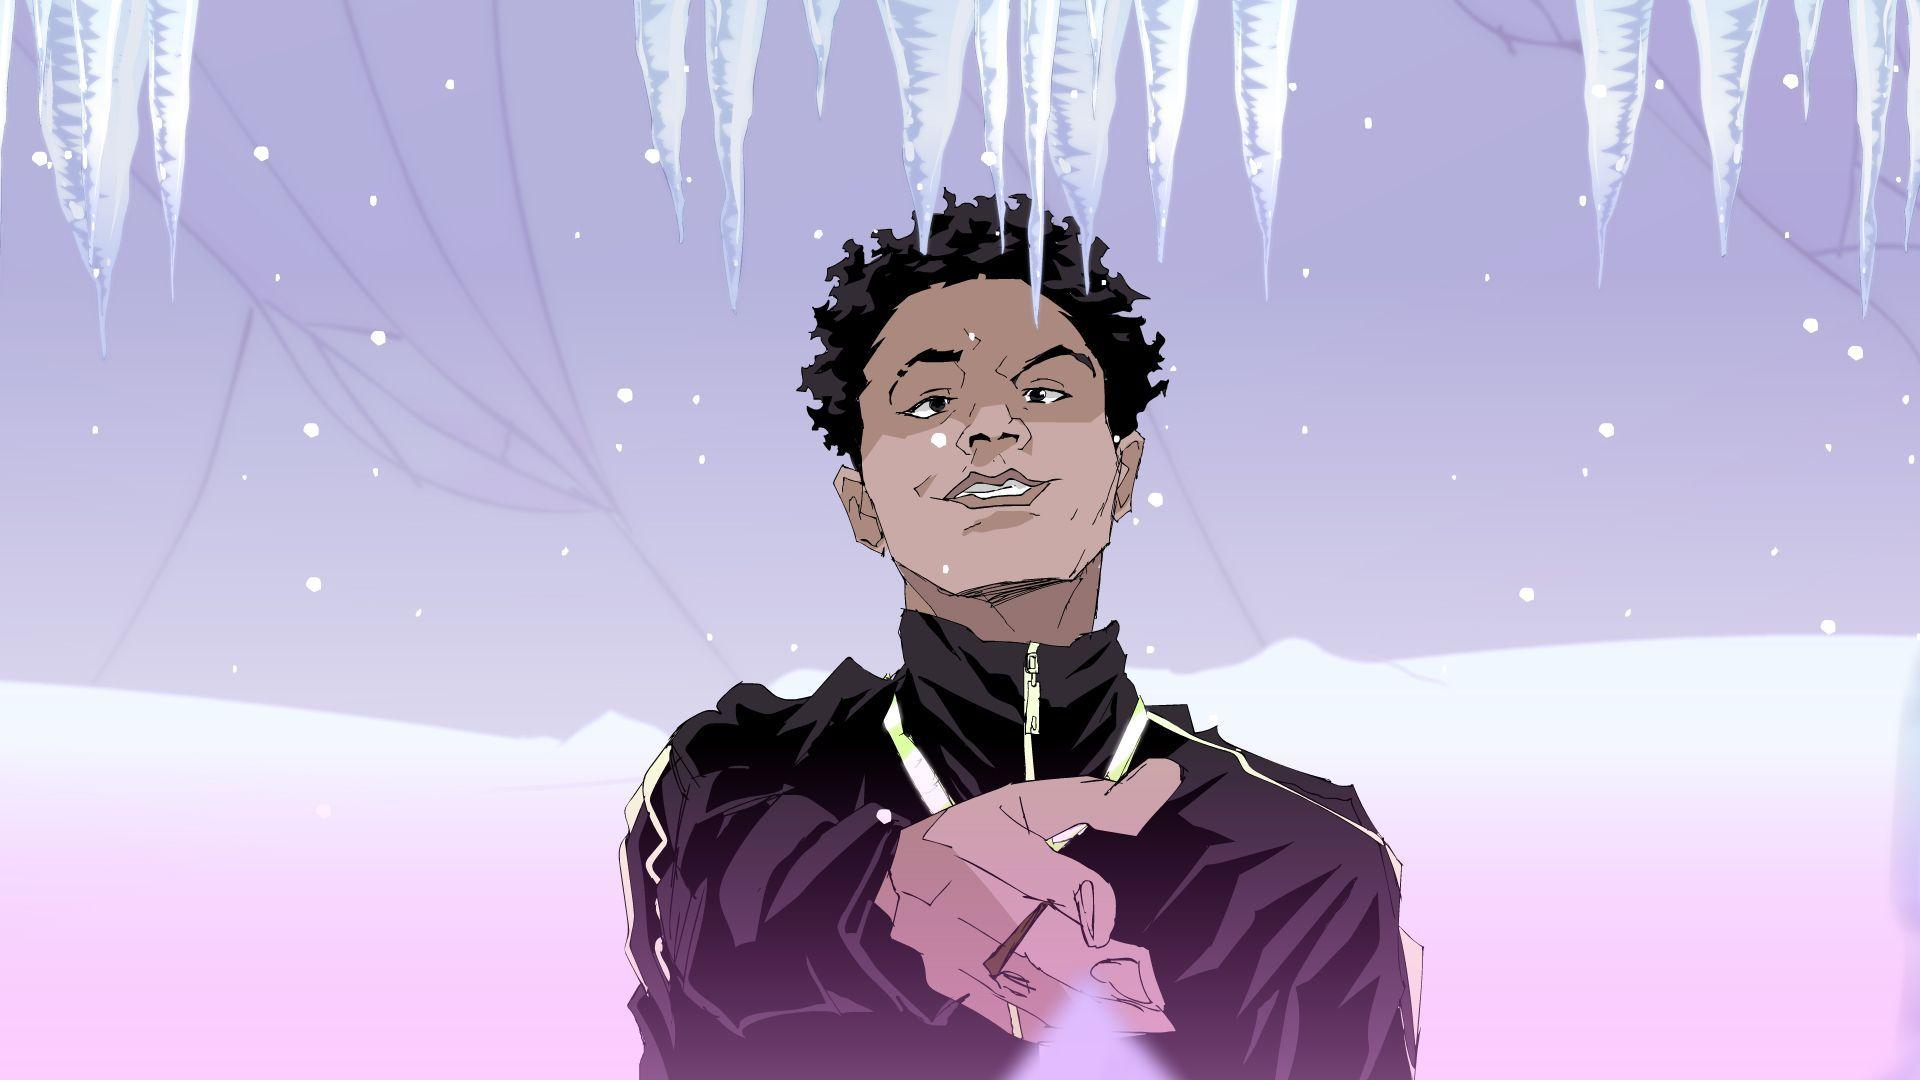 Free Lil Mosey Wallpaper Downloads